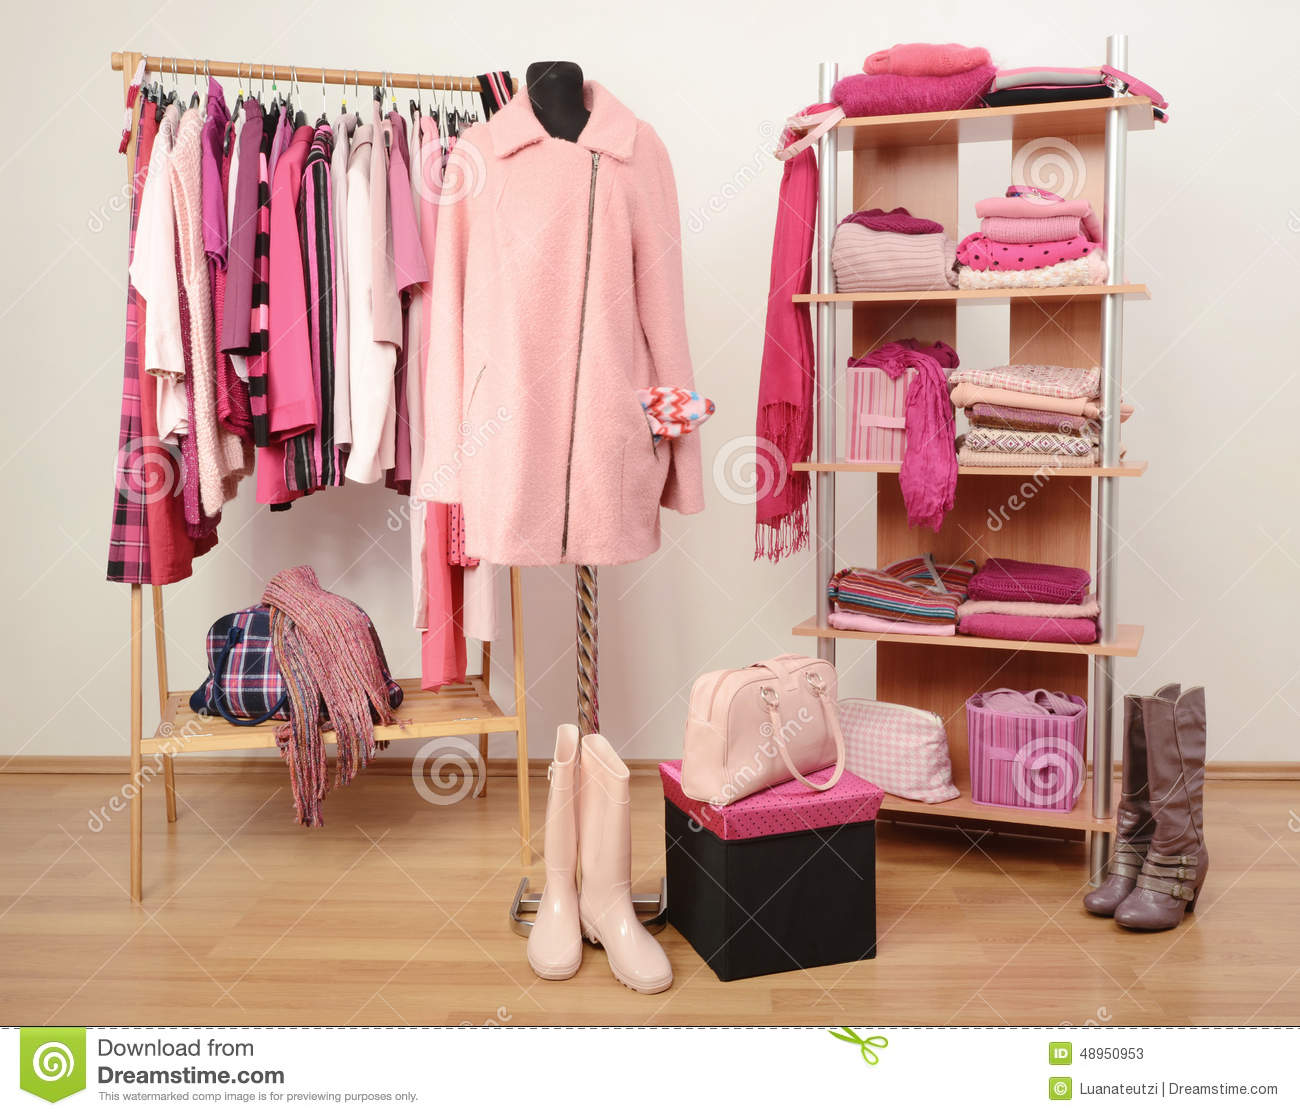 Nice Dressing Closet With Pink Clothes Arranged On Hangers And Shelf, A Coat On  A Mannequin.